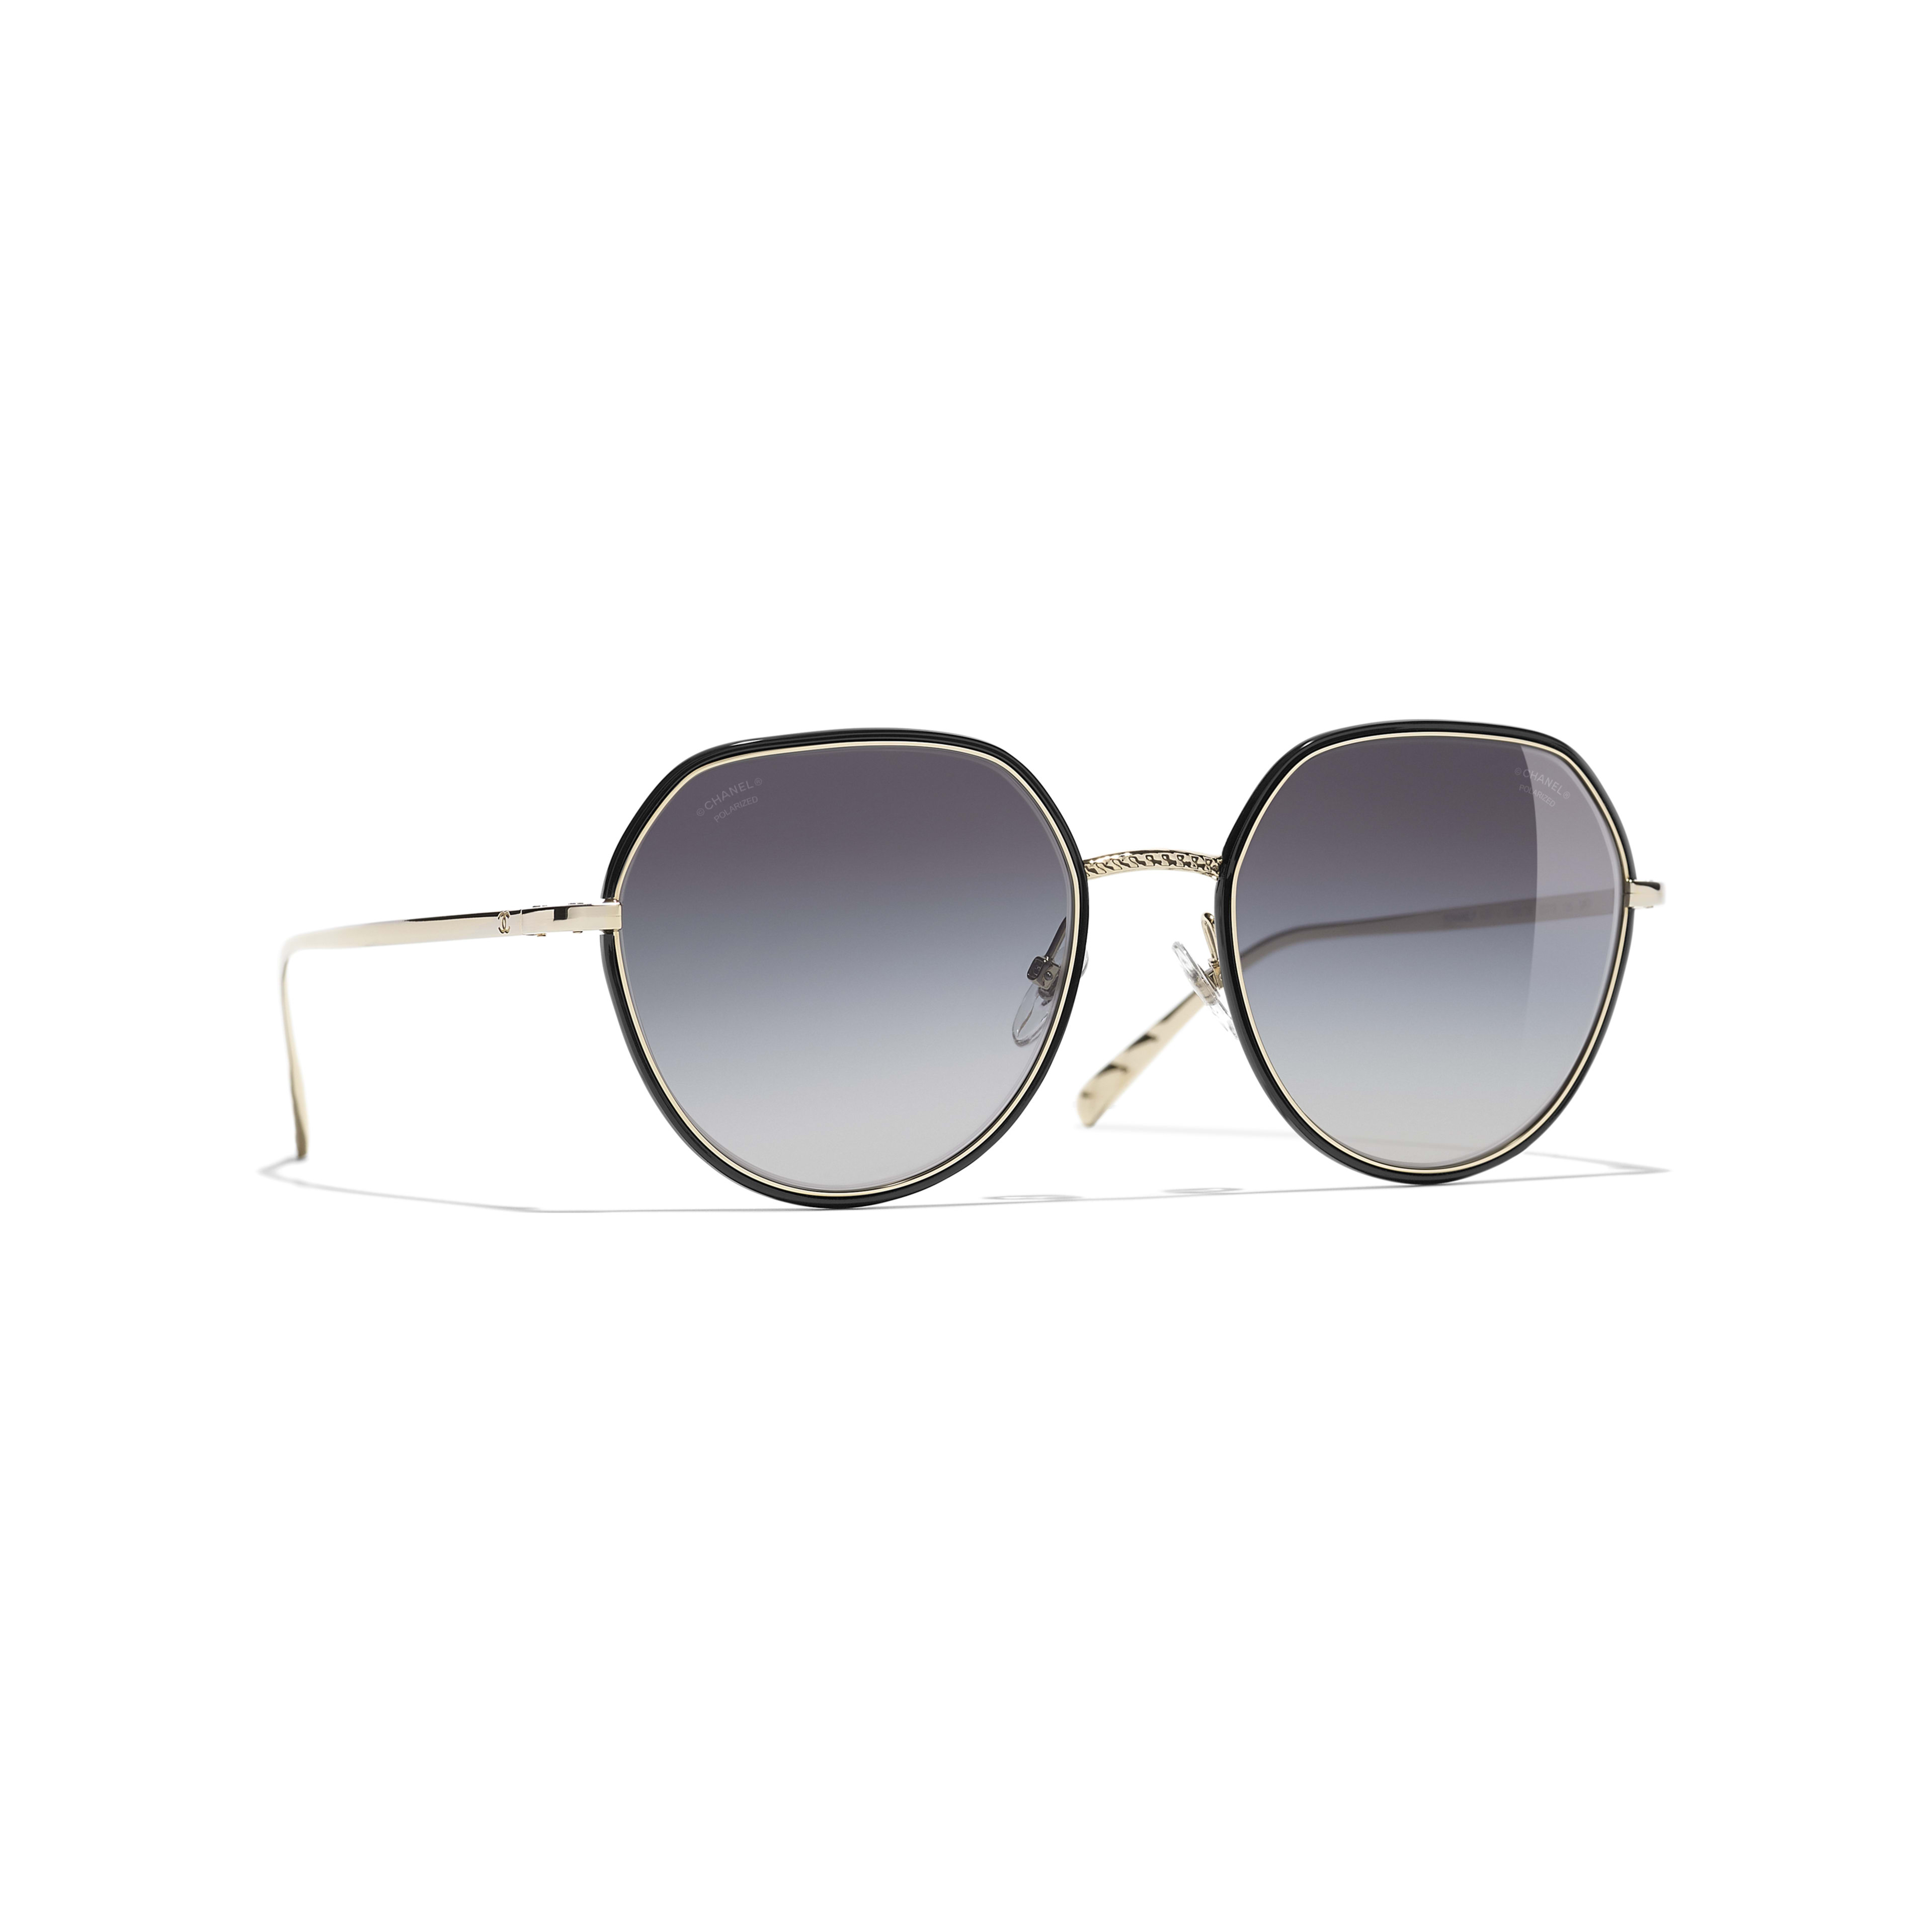 Round Sunglasses - Gold & Black - Metal - Polarized Lenses - Default view - see full sized version